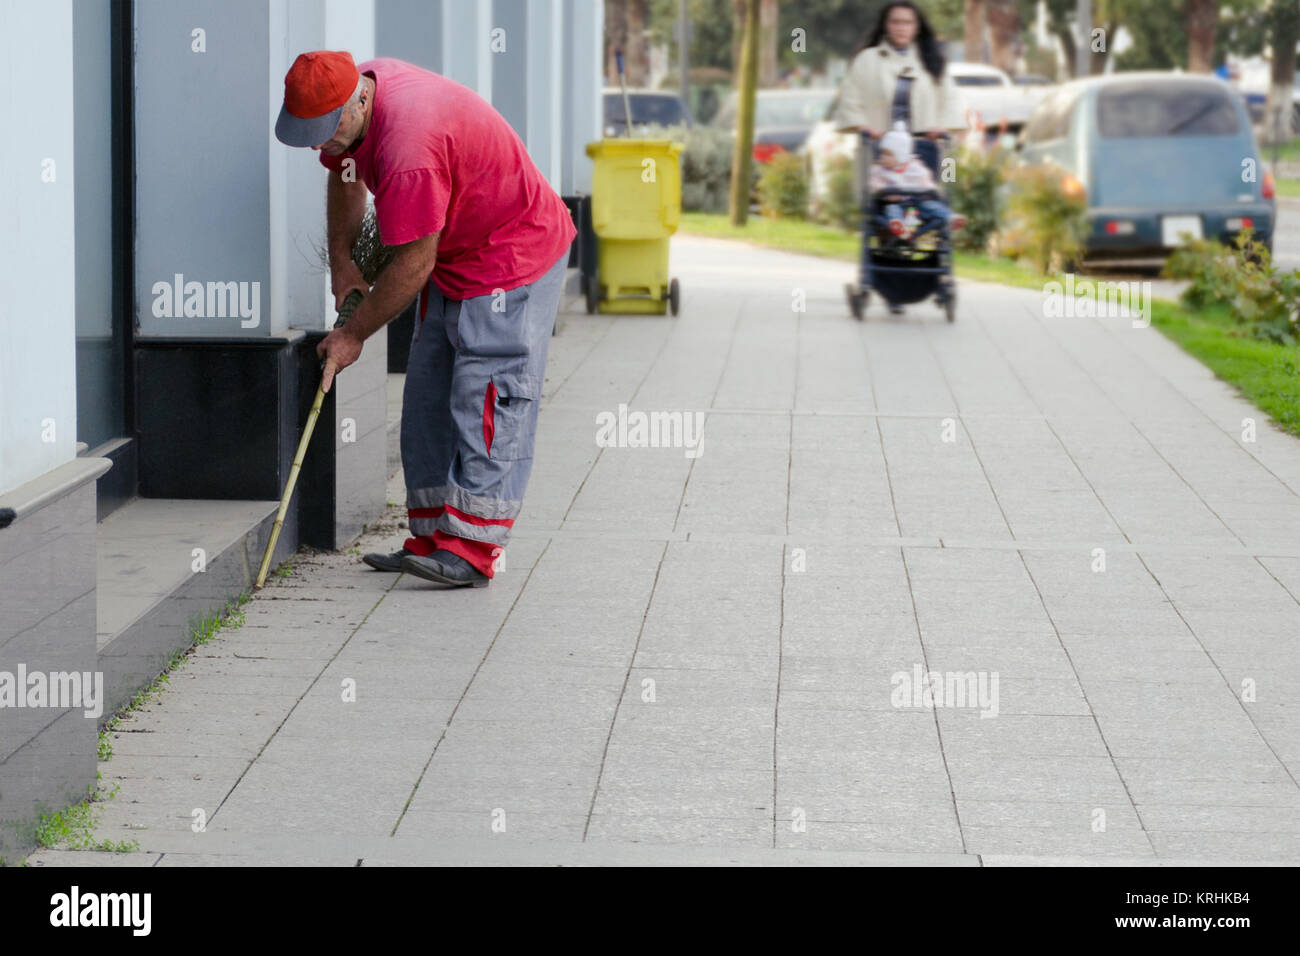 A city cleaner collects garbage near a building near the sidewalk. - Stock Image